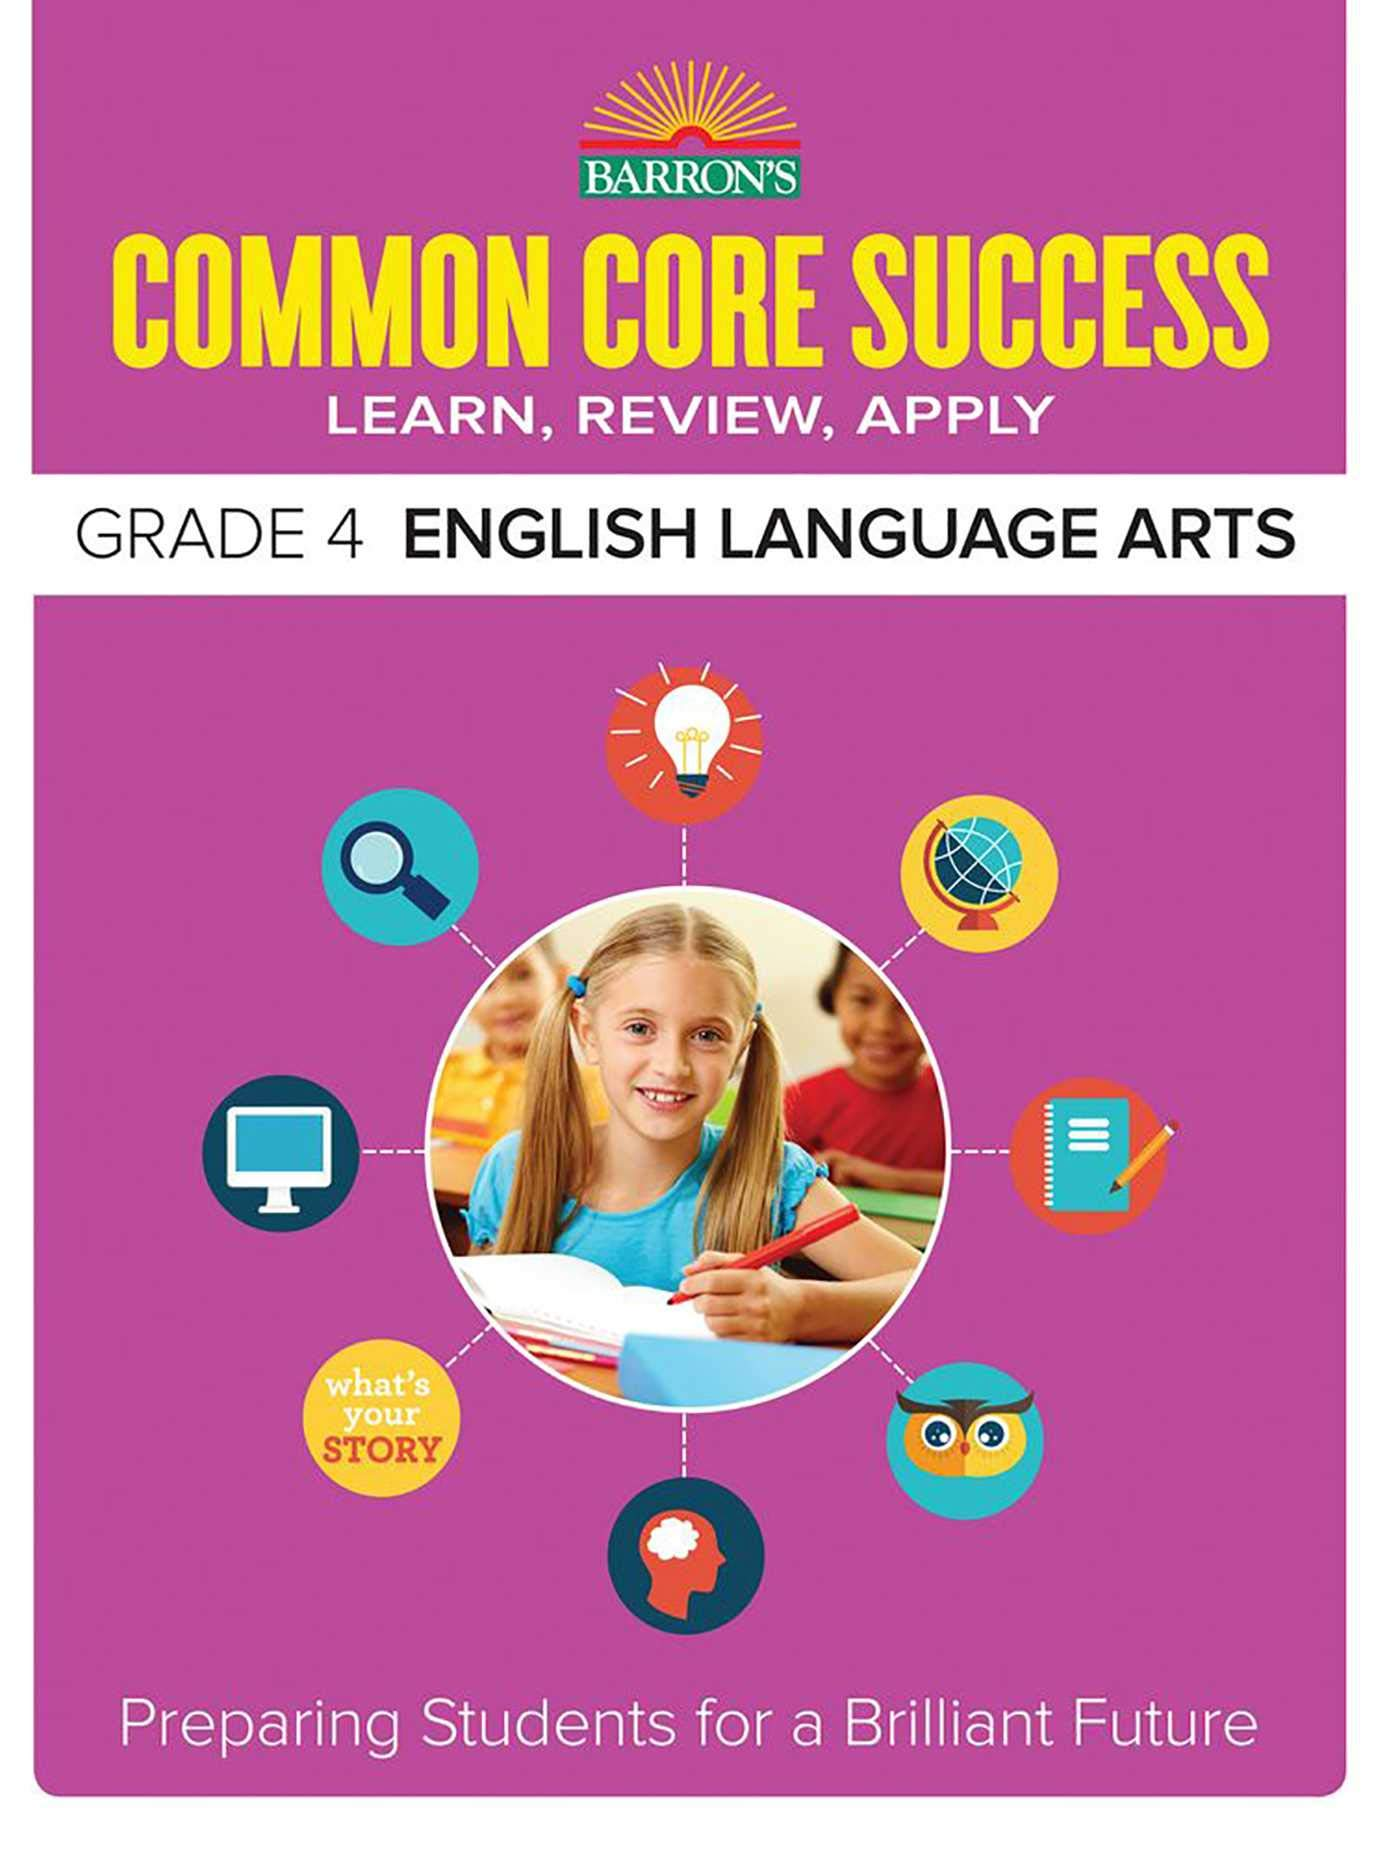 Barron's Common Core Success Grade 4 English Language Arts: Preparing Students for a Brilliant Future Text fb2 ebook